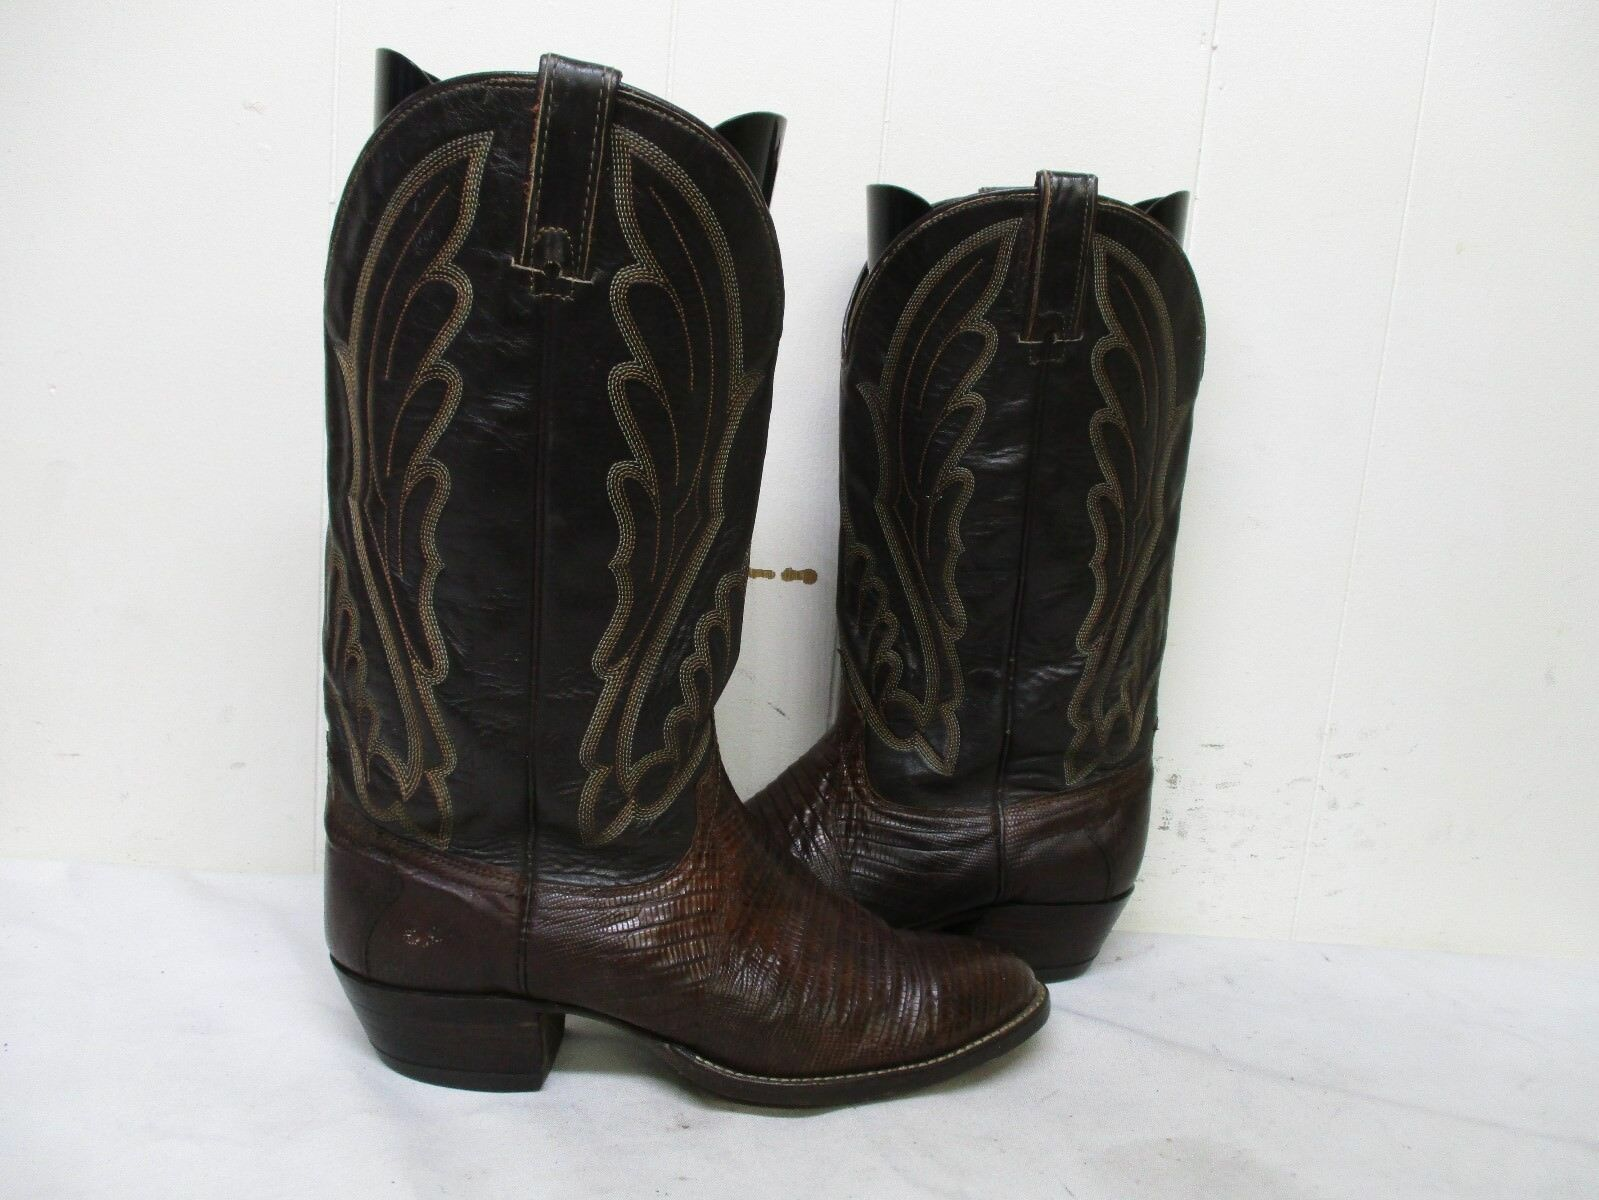 WRANGLER Brown Lizard Leather Cowboy Boots Mens Size 9 D Style 42781